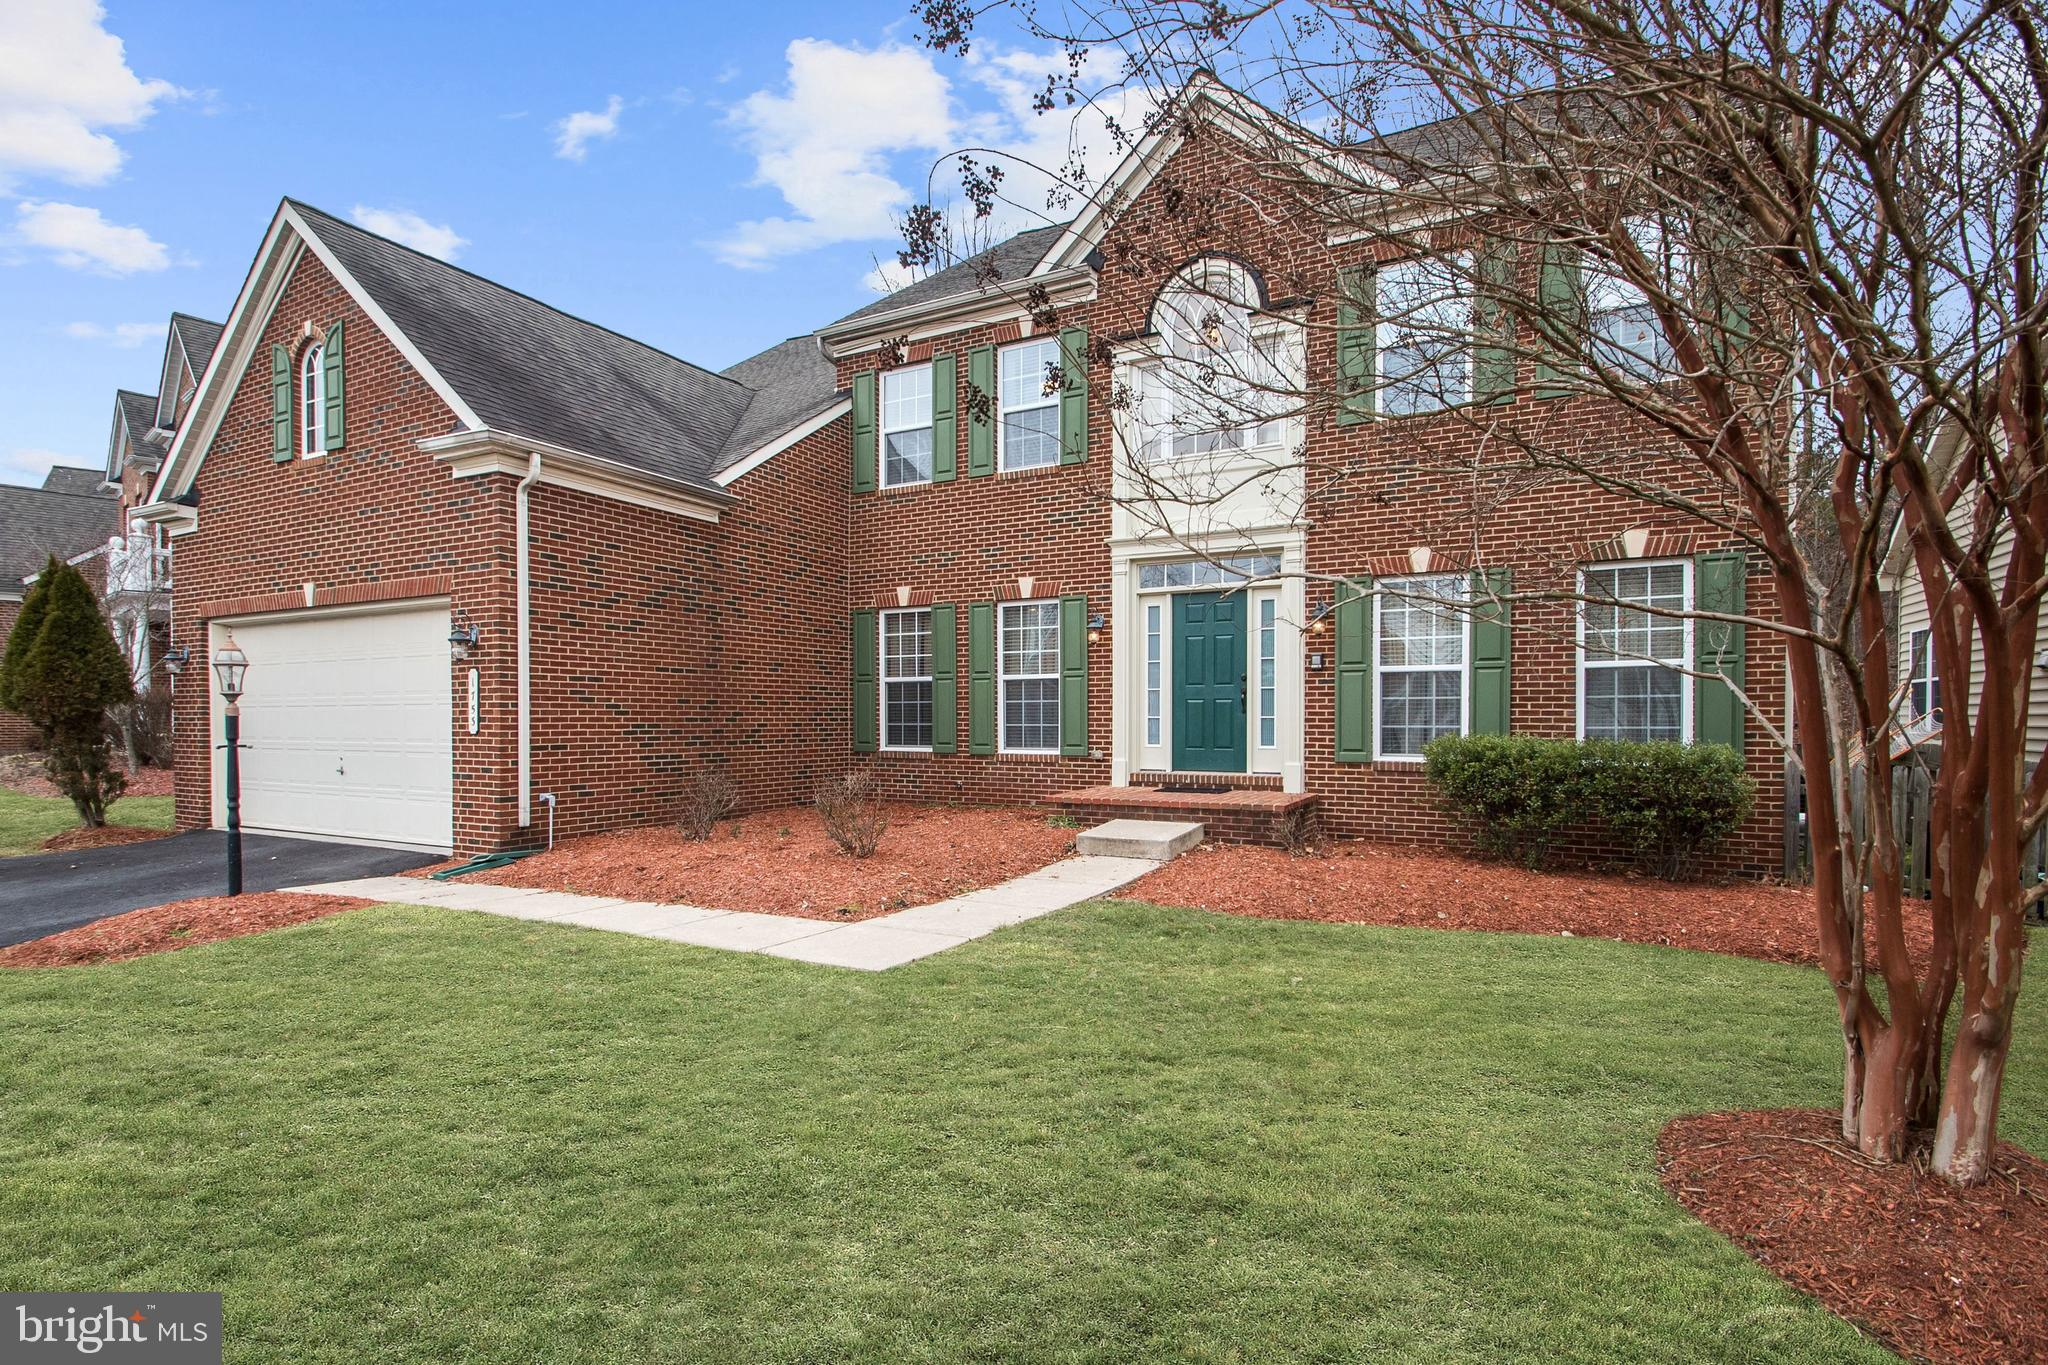 1753 ALLERFORD DRIVE, HANOVER, MD 21076